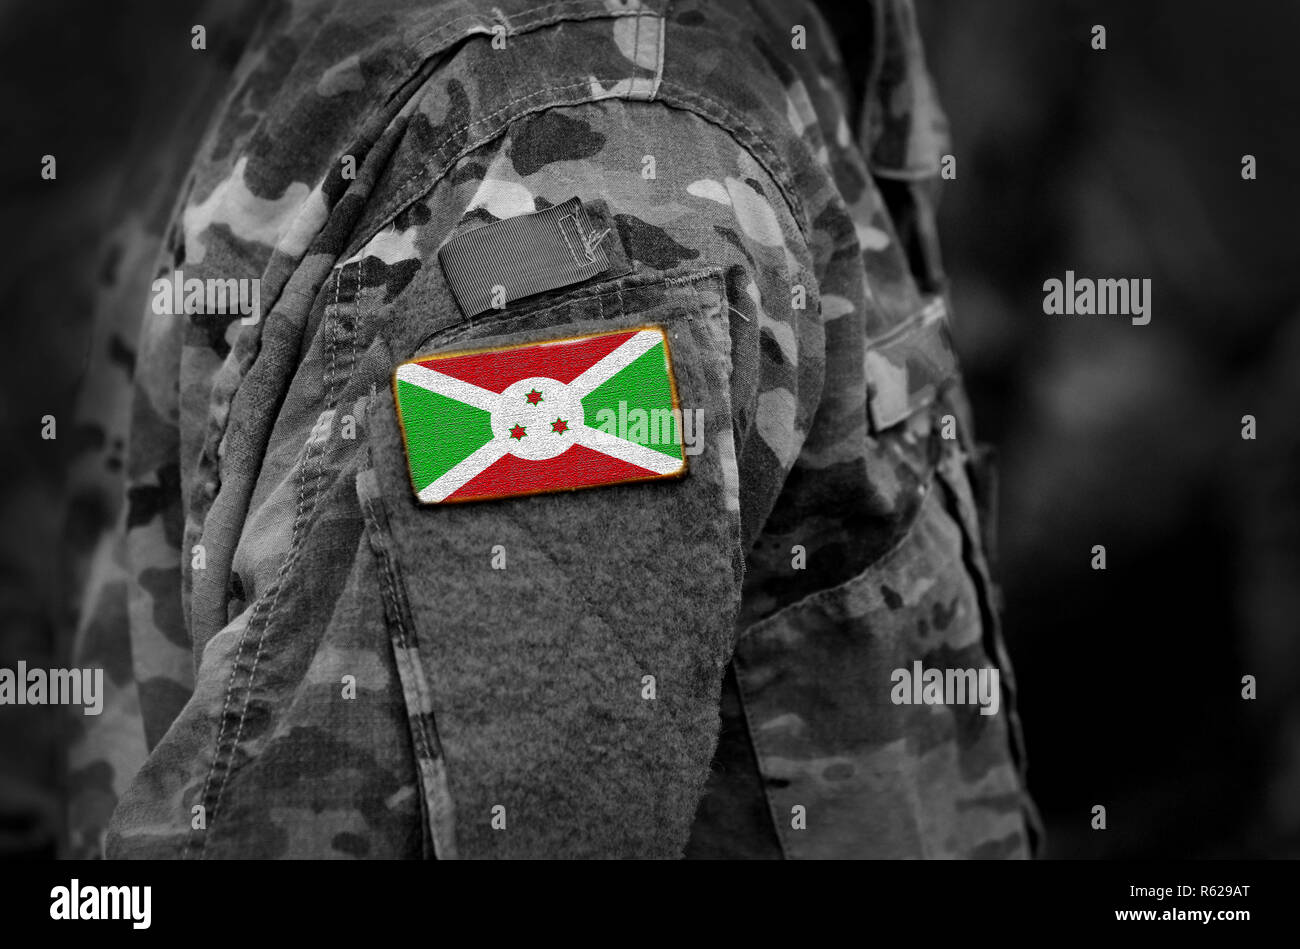 Flag of Burundi on soldiers arm (collage). - Stock Image